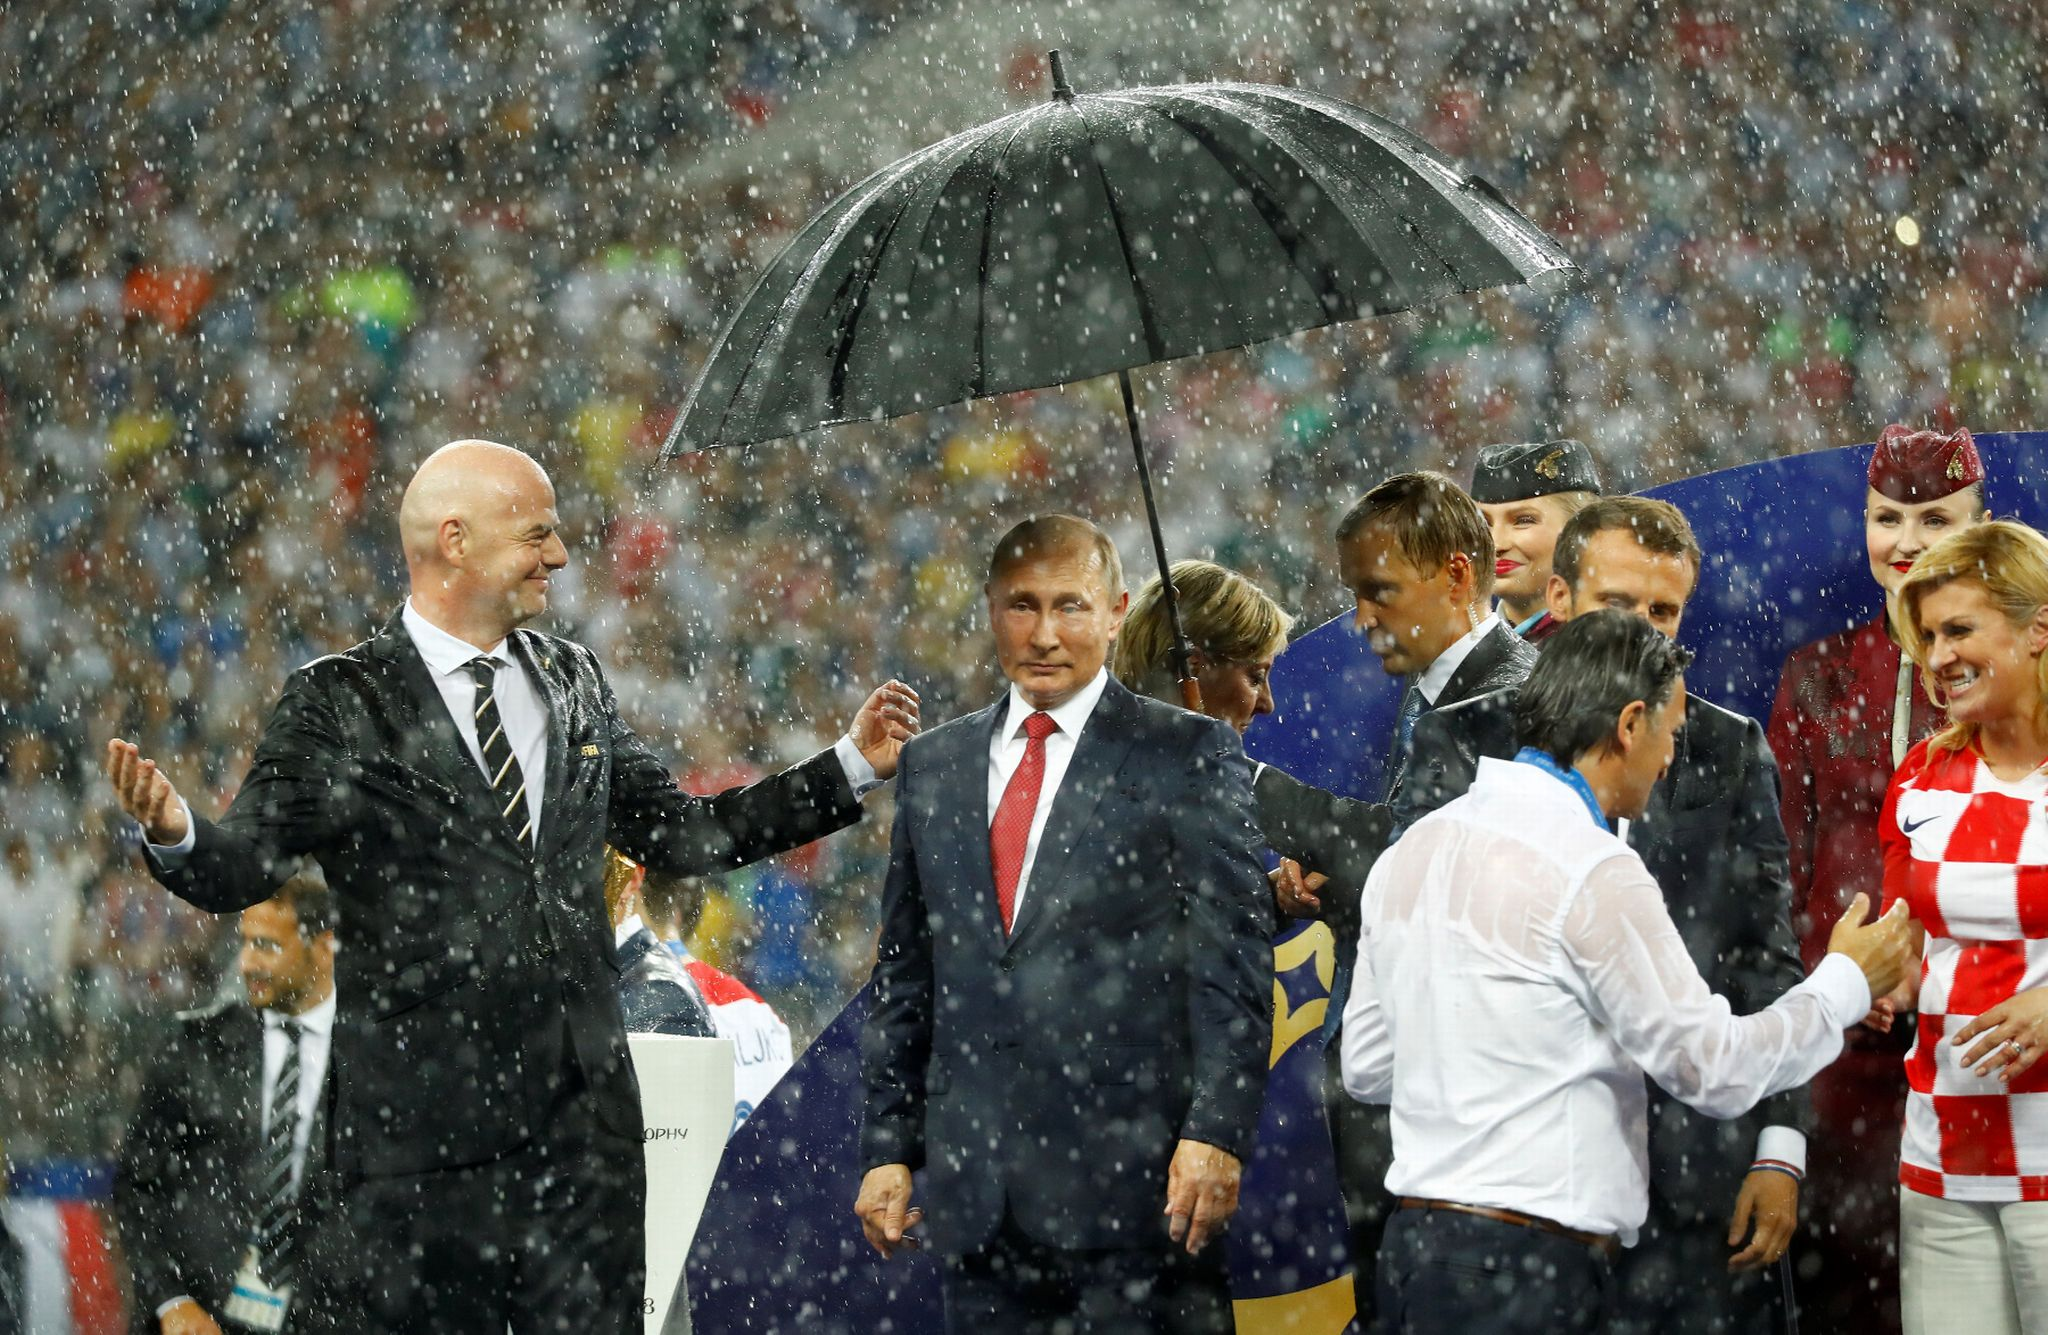 World Cup 2018: Putin gets his own umbrella as world pioneers get doused in rain